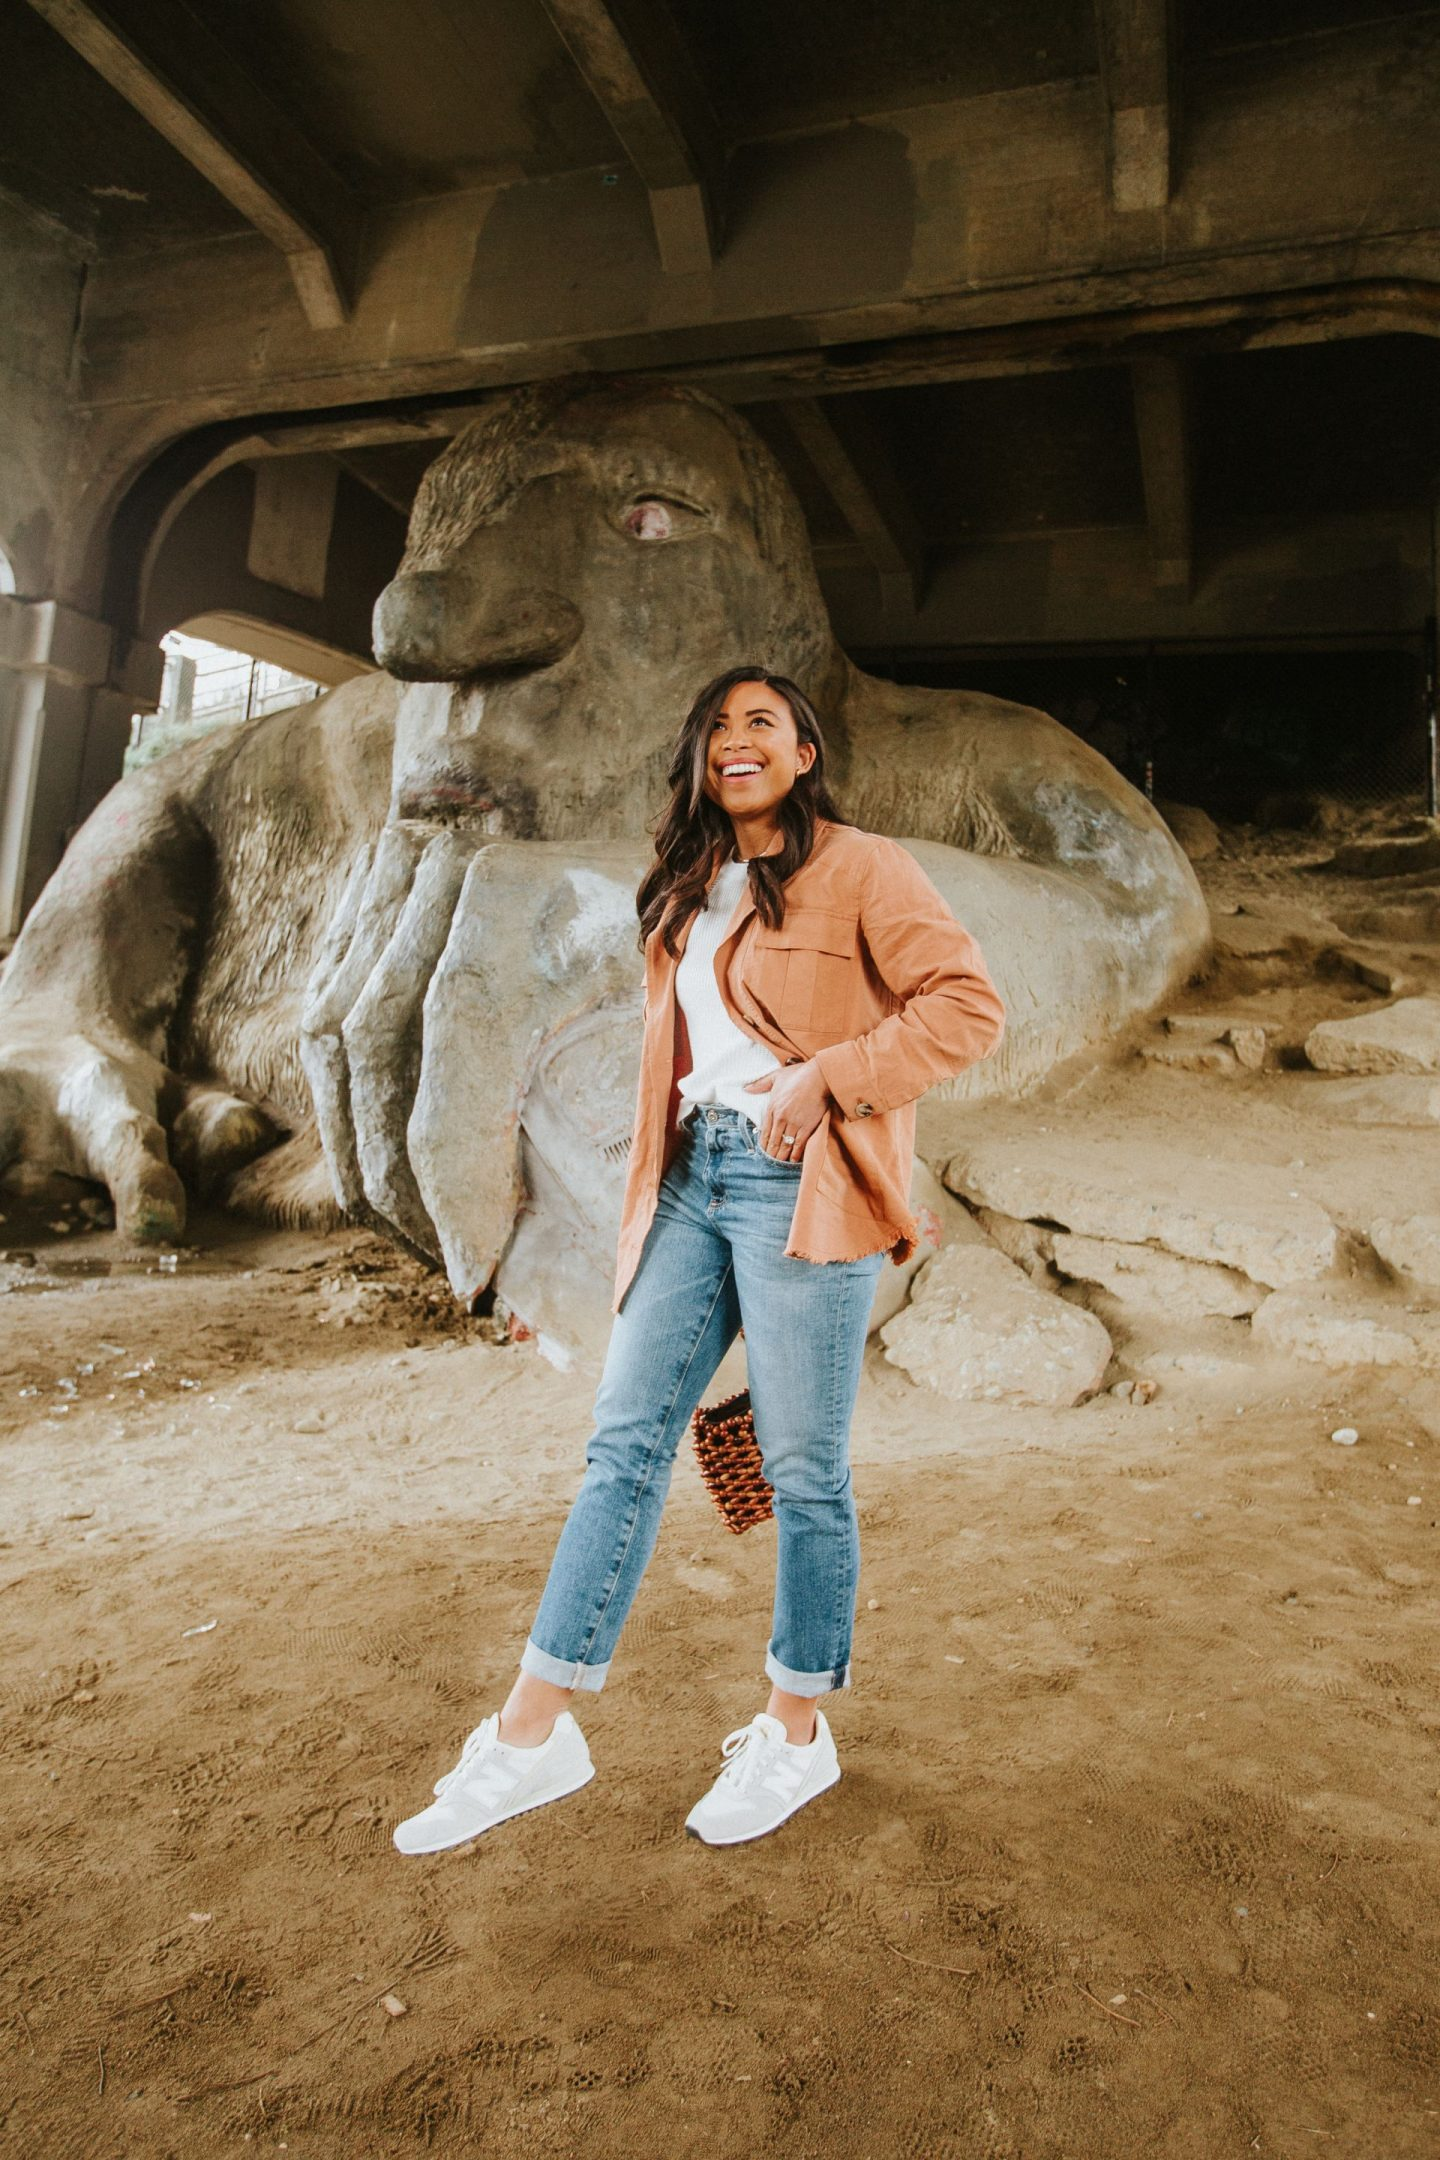 The Fremont Troll - Aurora Bridge - Troll Avenue - Fremont Seattle - Seattle's Most Instagrammable Places in Fremont